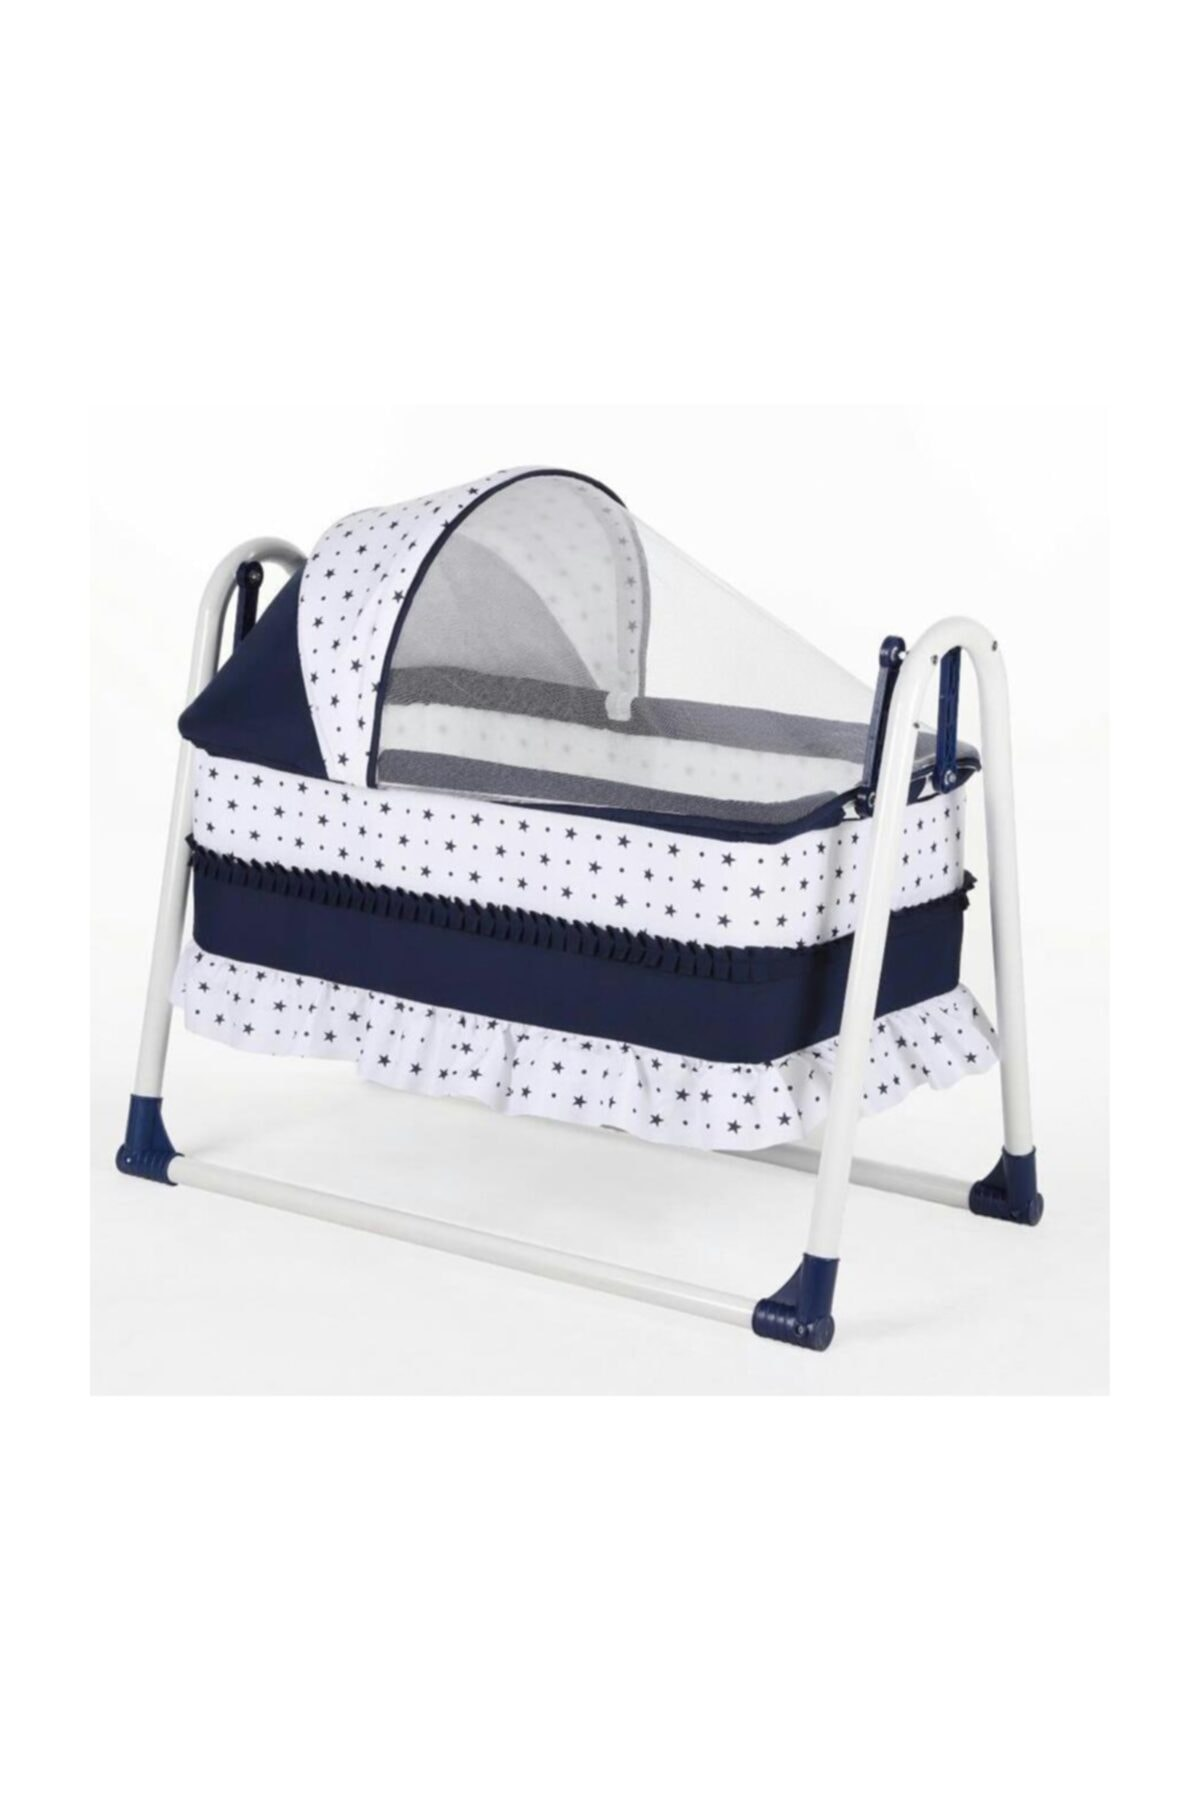 Lux or Baby Bed Basket Portable Cradle Rocking Cradle Baby Crib Hanging Cradle Hanging Bassinet and Portable Swing for 0-2years